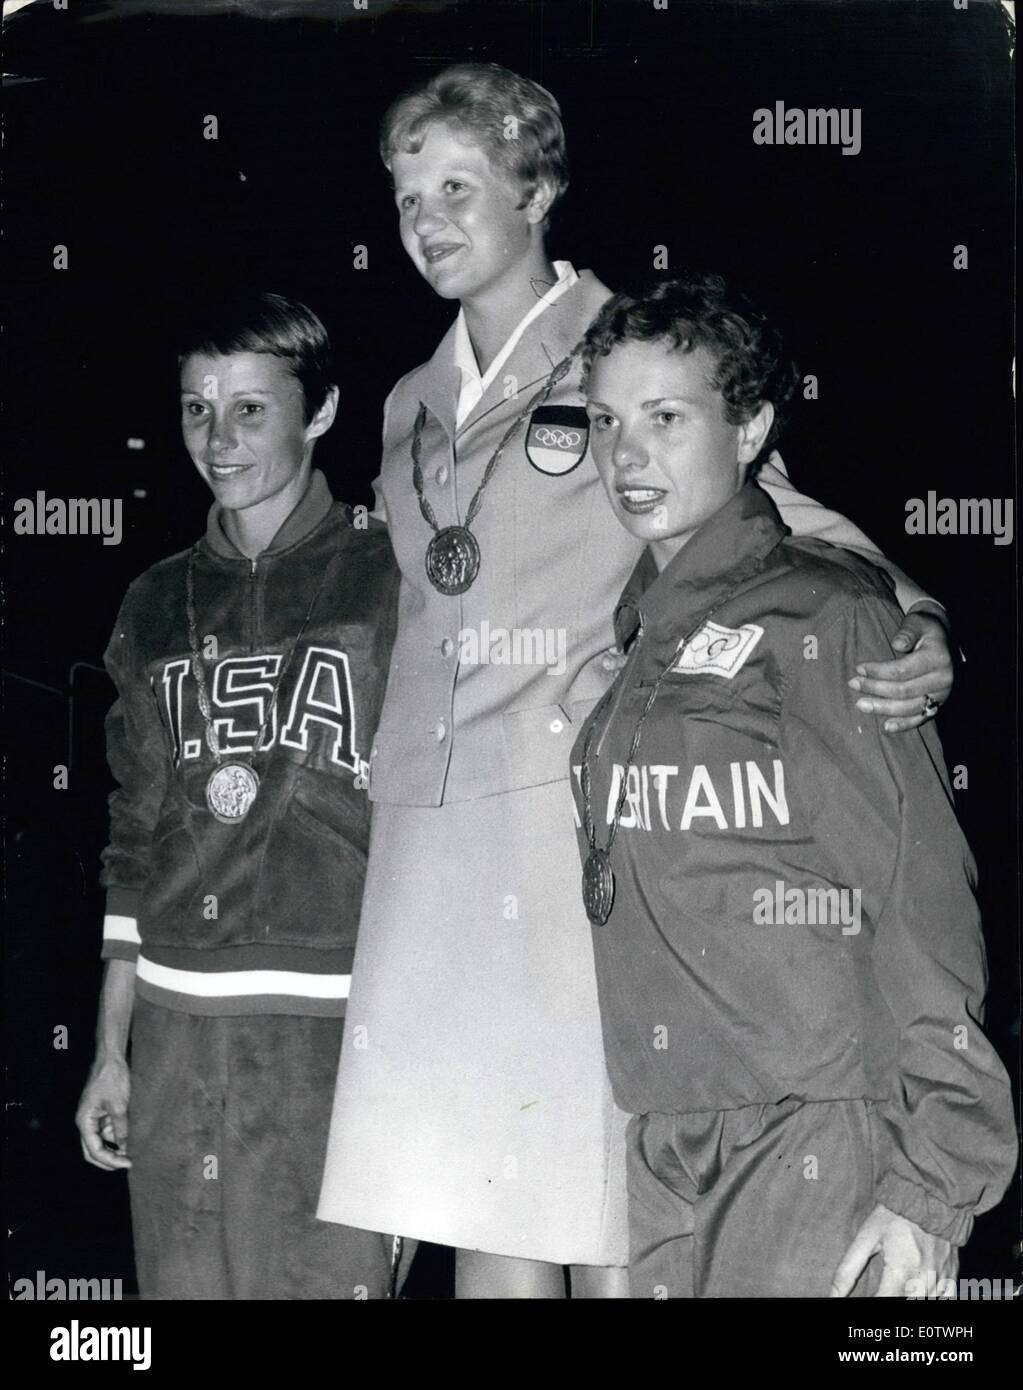 Aug. 08, 1960 - Olympic Games In Rome Diving Winners With Their Medals; Photo Shows Pictured on the rostrum after the Women's spring board diving finalin Rome are I. Kramer, of Germany (Gold Medal), centre; P. Pope (U.S.A.) Silver Medal (on left), and E. Ferris (Great Britain (Bronze Medal), on right. - Stock Image